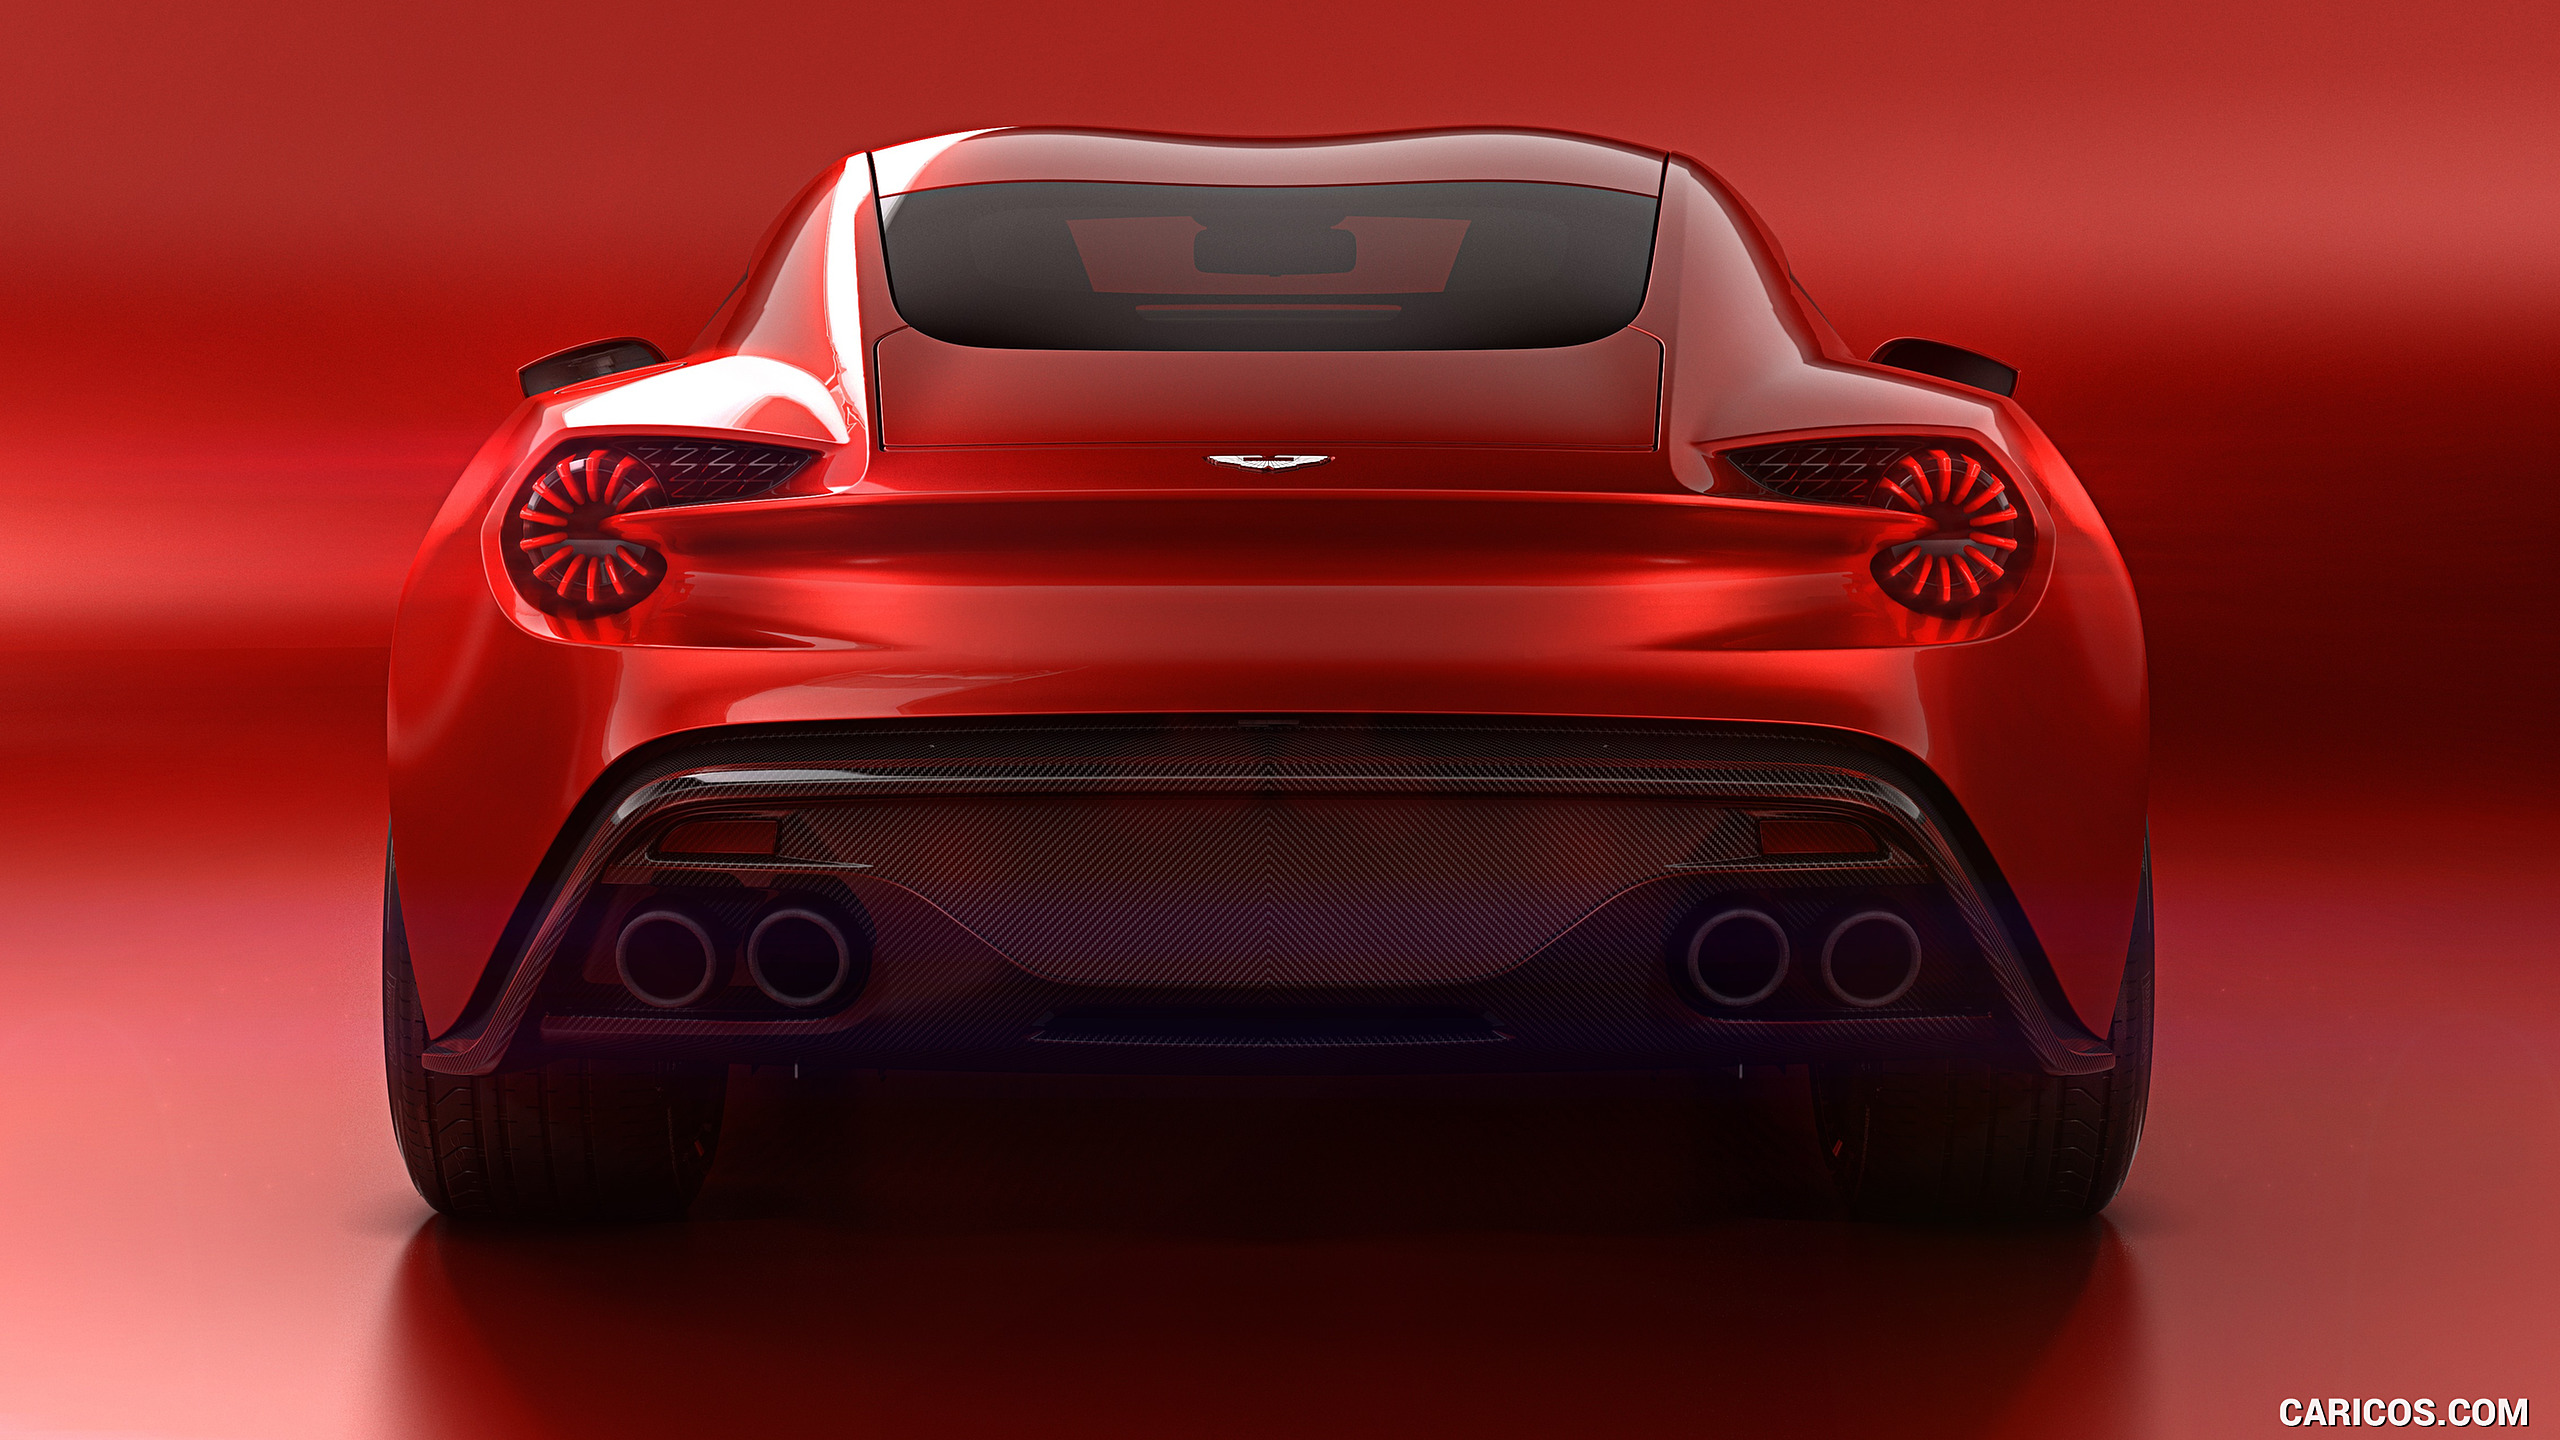 2016 Aston Martin Vanquish Zagato Concept   Rear HD Wallpaper 8 2560x1440